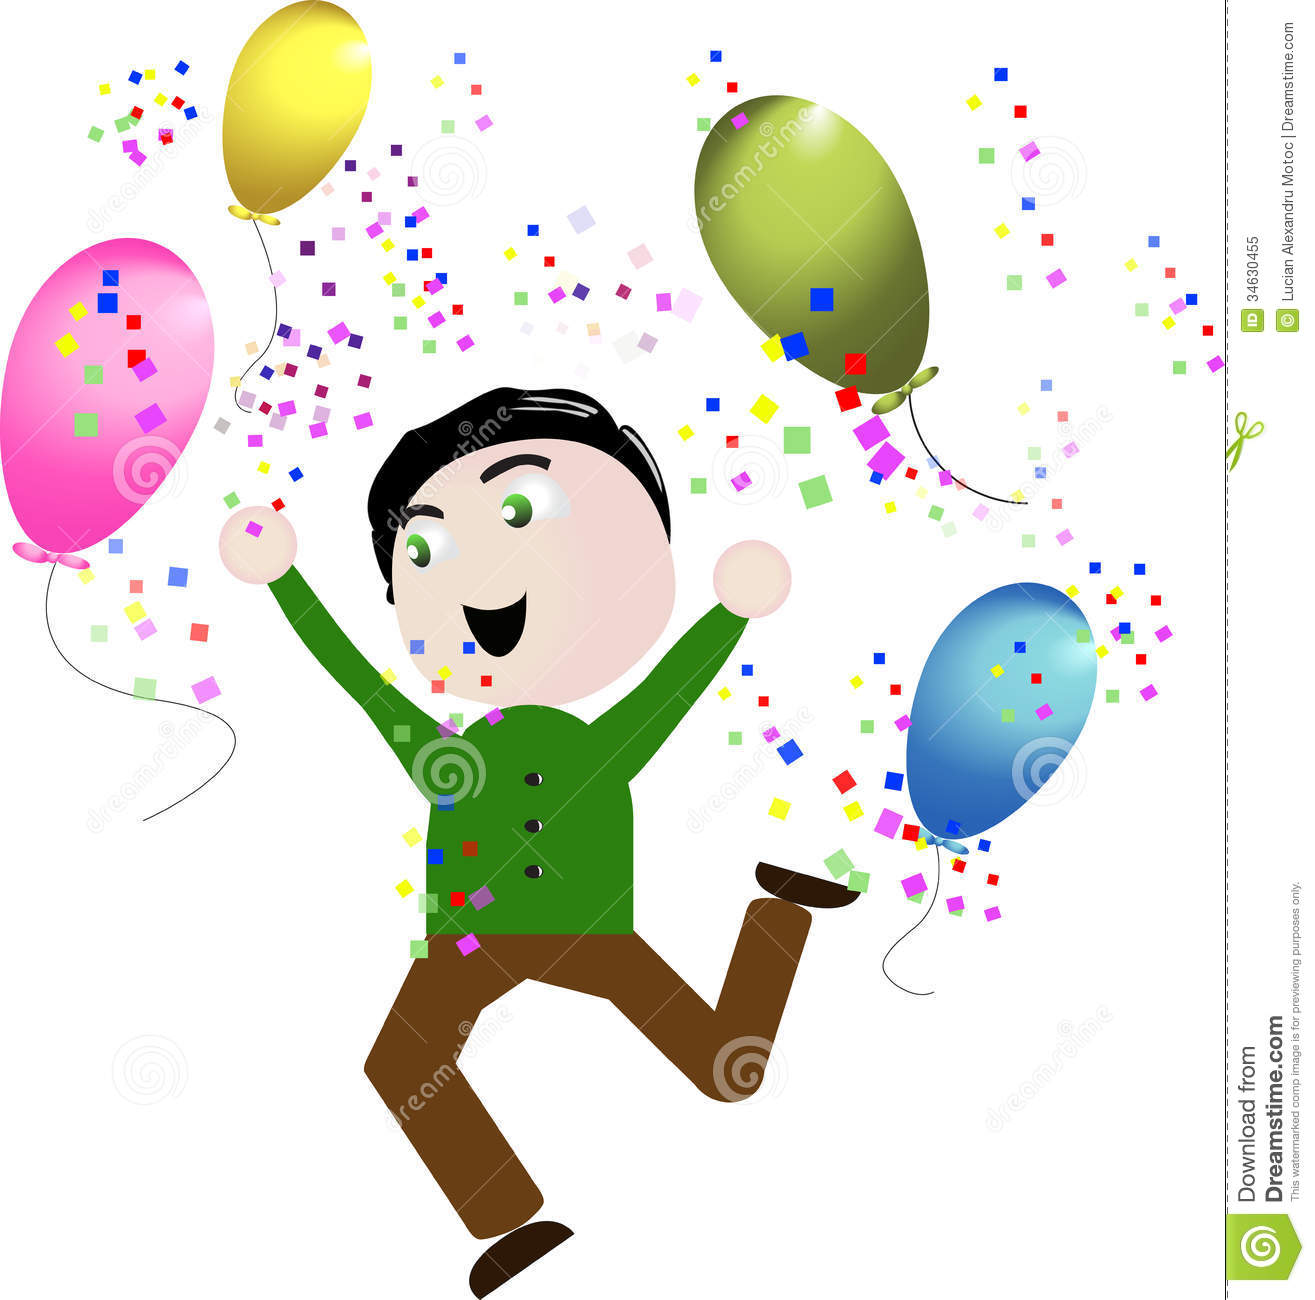 Celebration - Vector Boy Happy Celebration Balloons